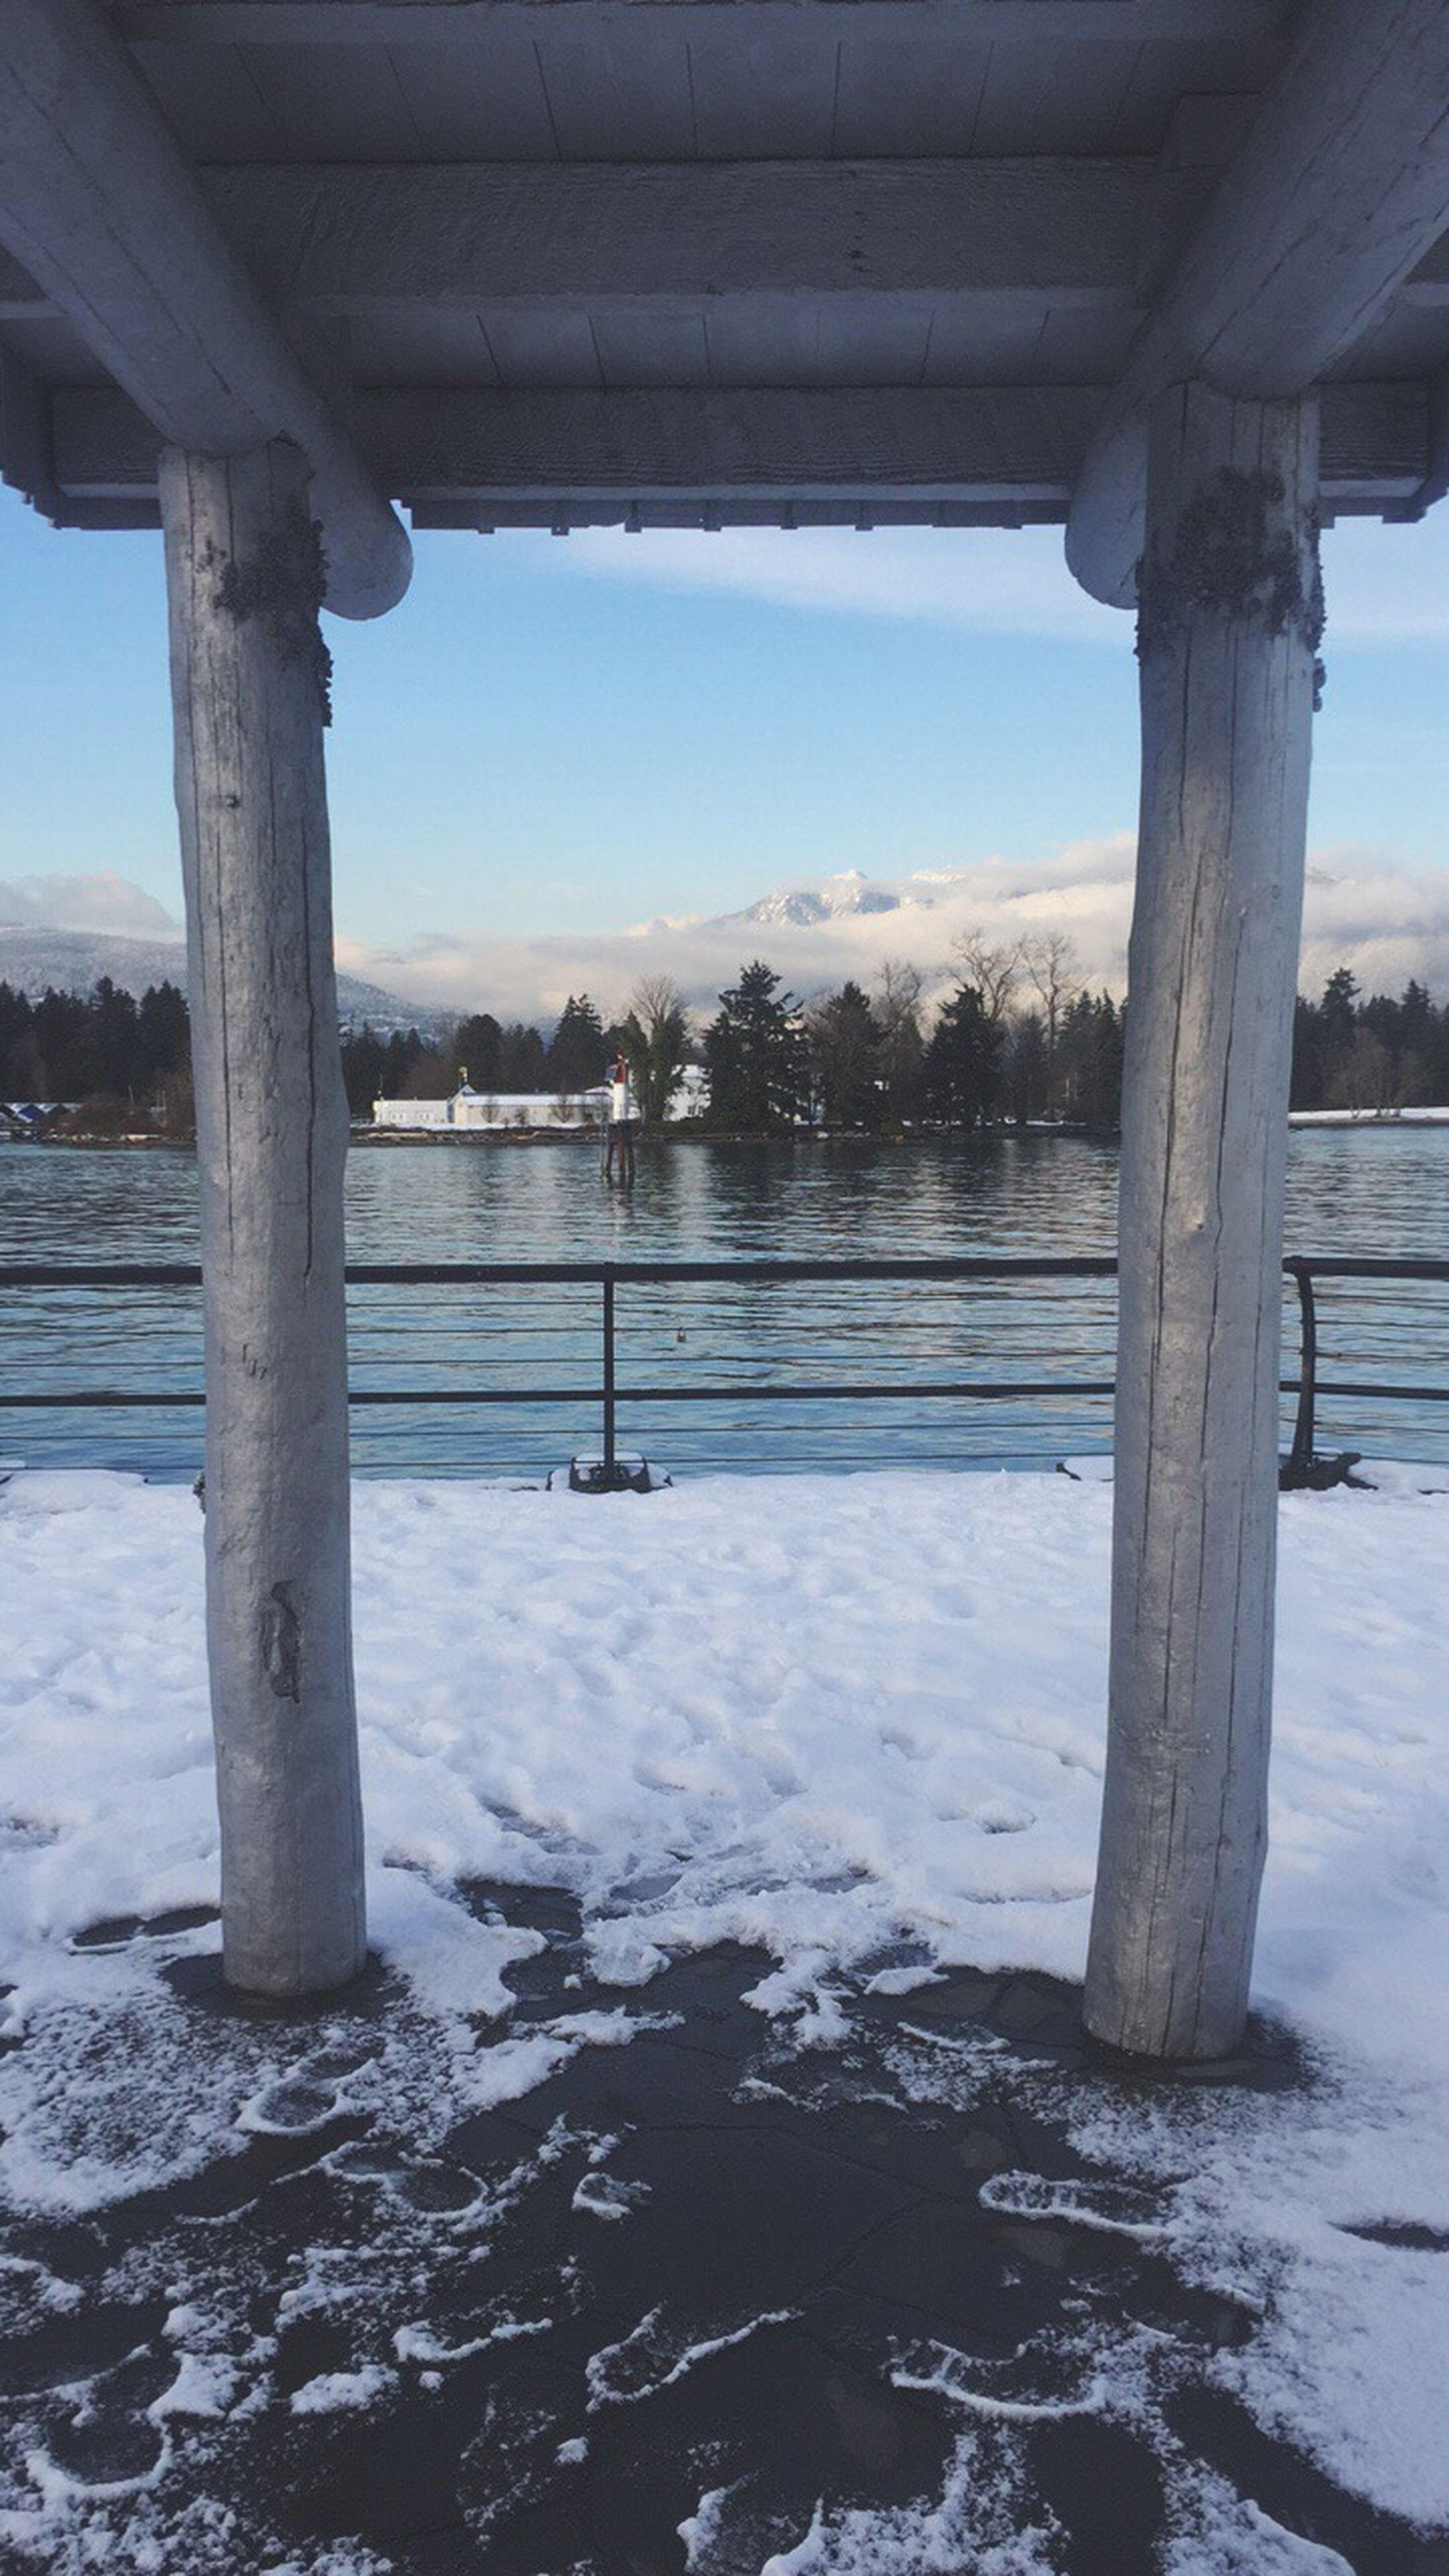 water, nature, architecture, architectural column, built structure, day, tree, below, cold temperature, no people, outdoors, beauty in nature, bridge - man made structure, sky, underneath